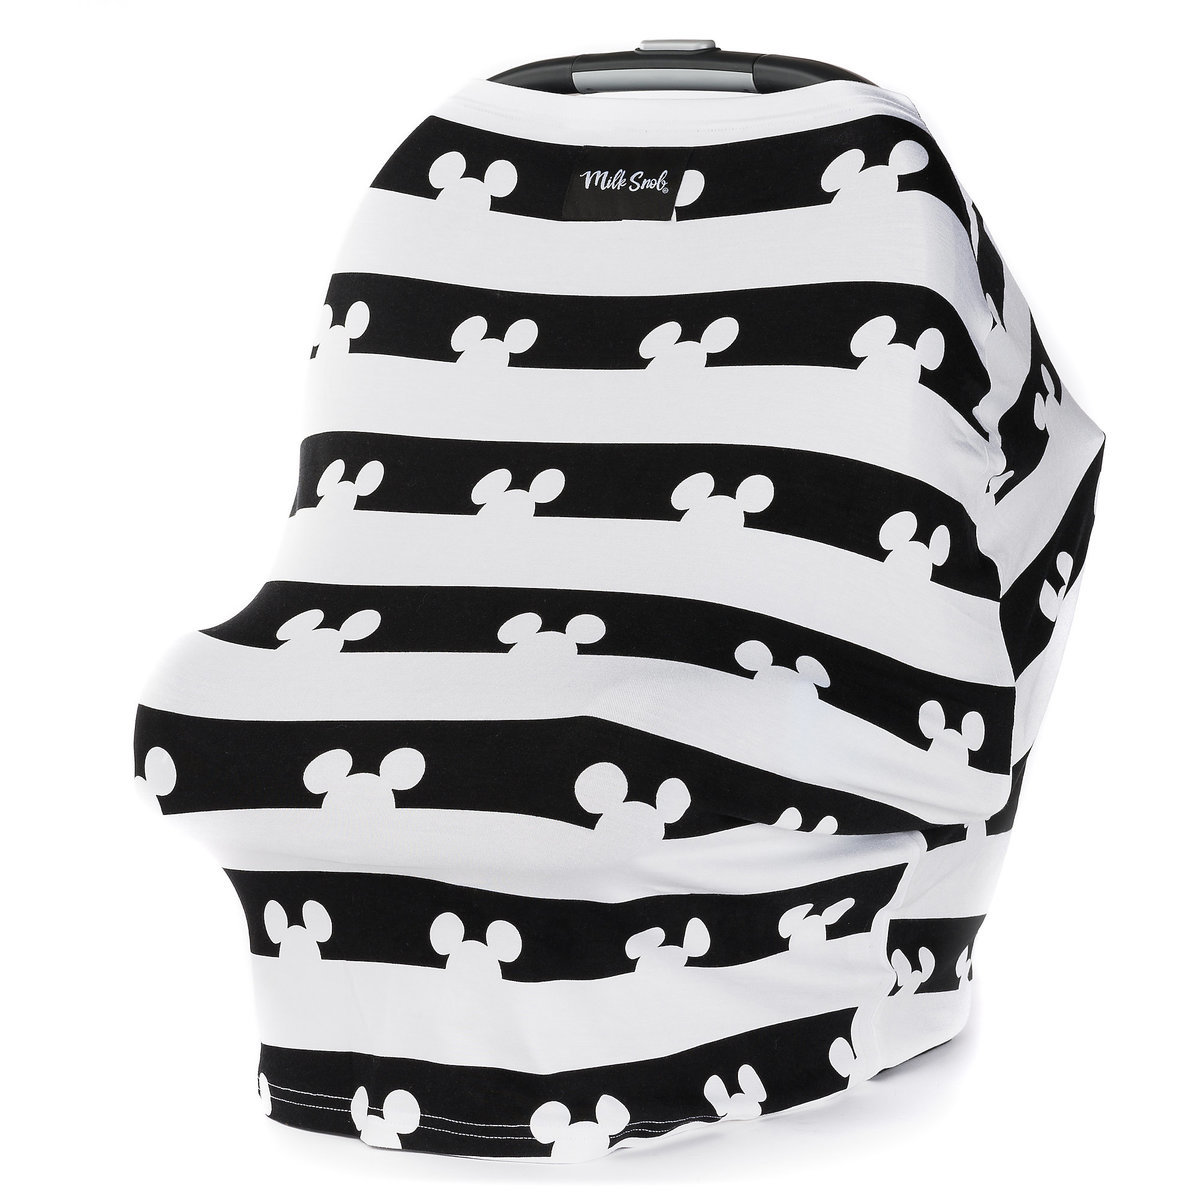 Mickey Mouse Baby Seat Cover by Milk Snob | shopDisney